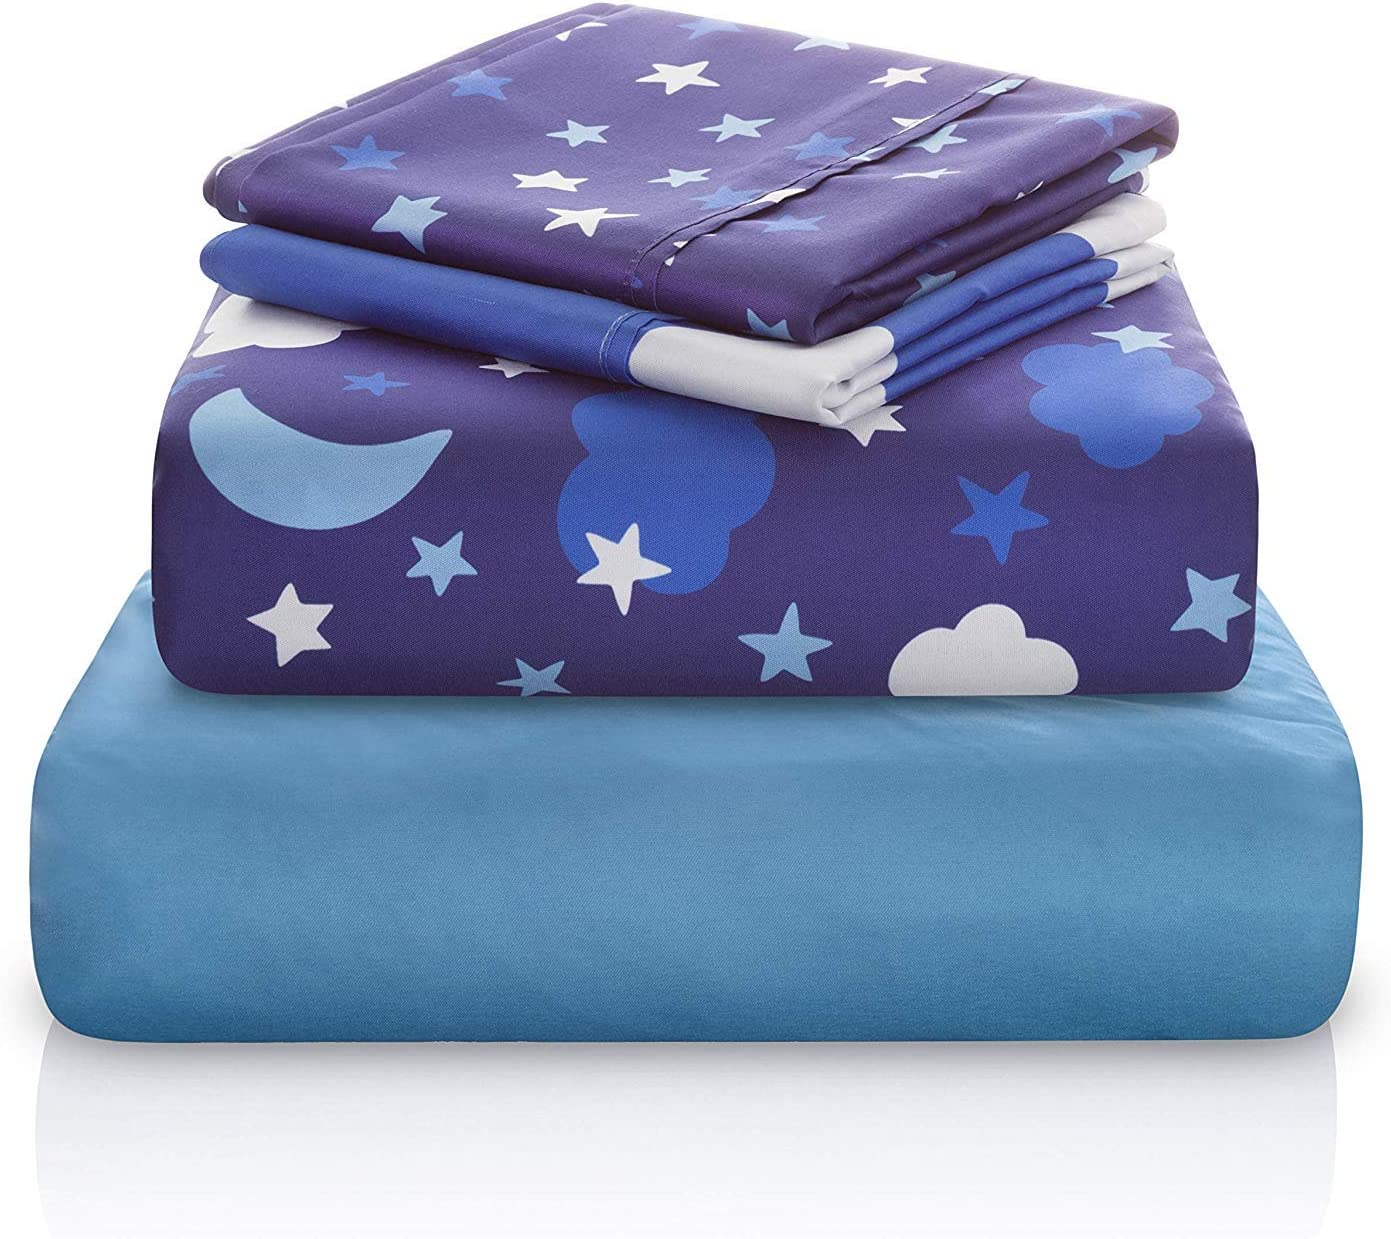 Starry Night Sky Print Kids Bed Sheet